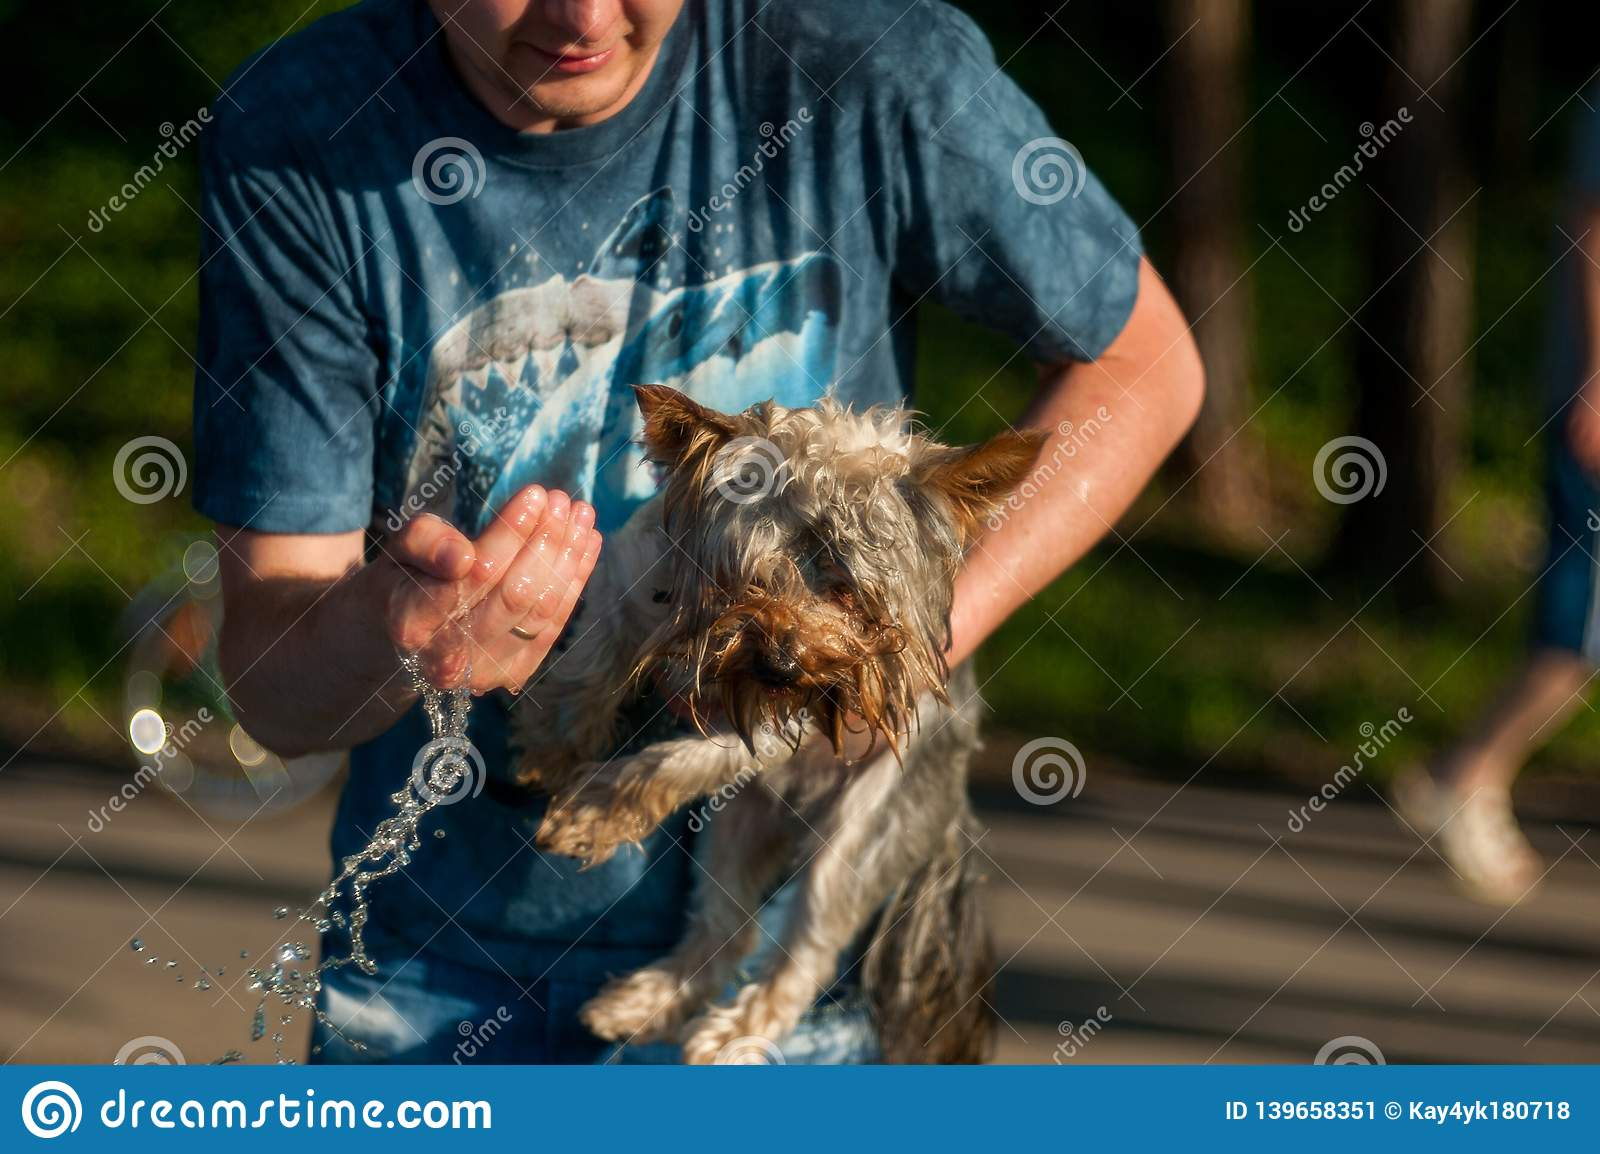 The guy washes the dog with cold water